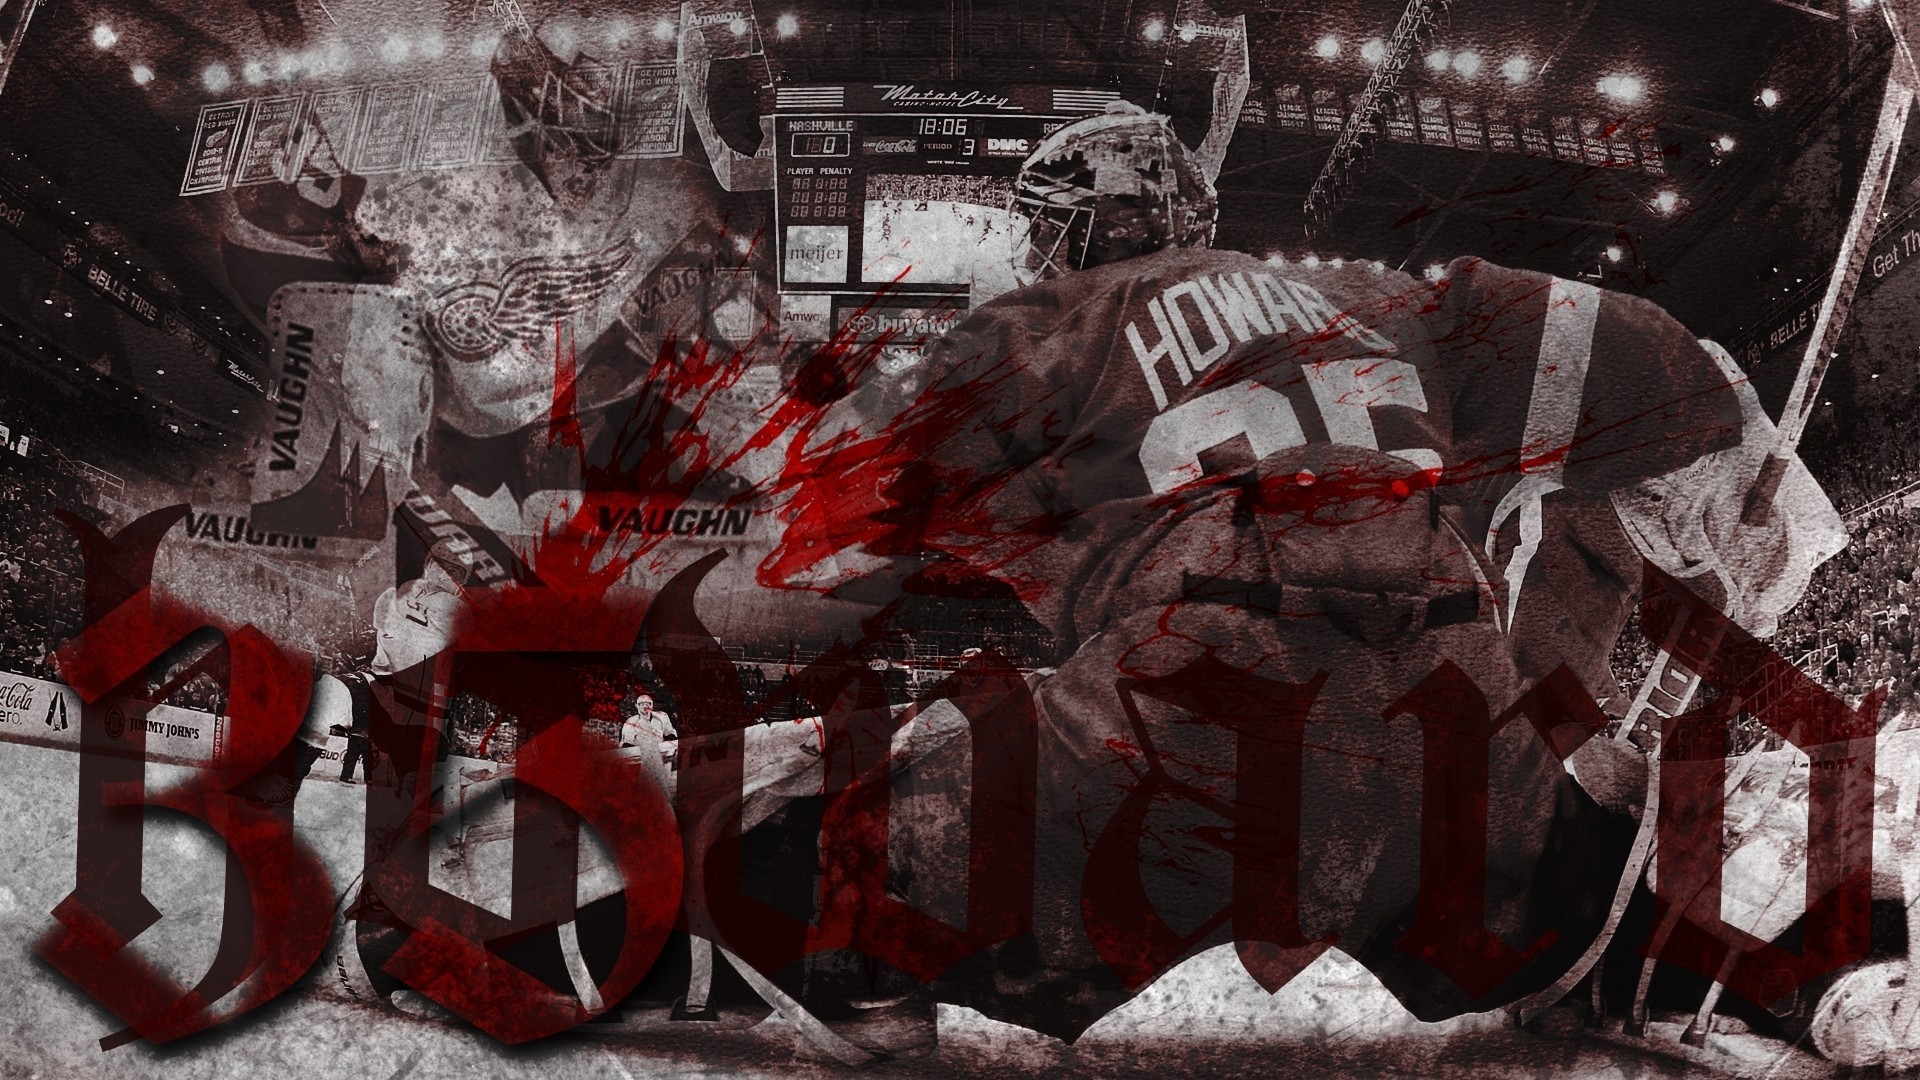 1920x1080 Hockey detroit red wings goalie jimmy howard g wallpaper |  |  128683 | WallpaperUP